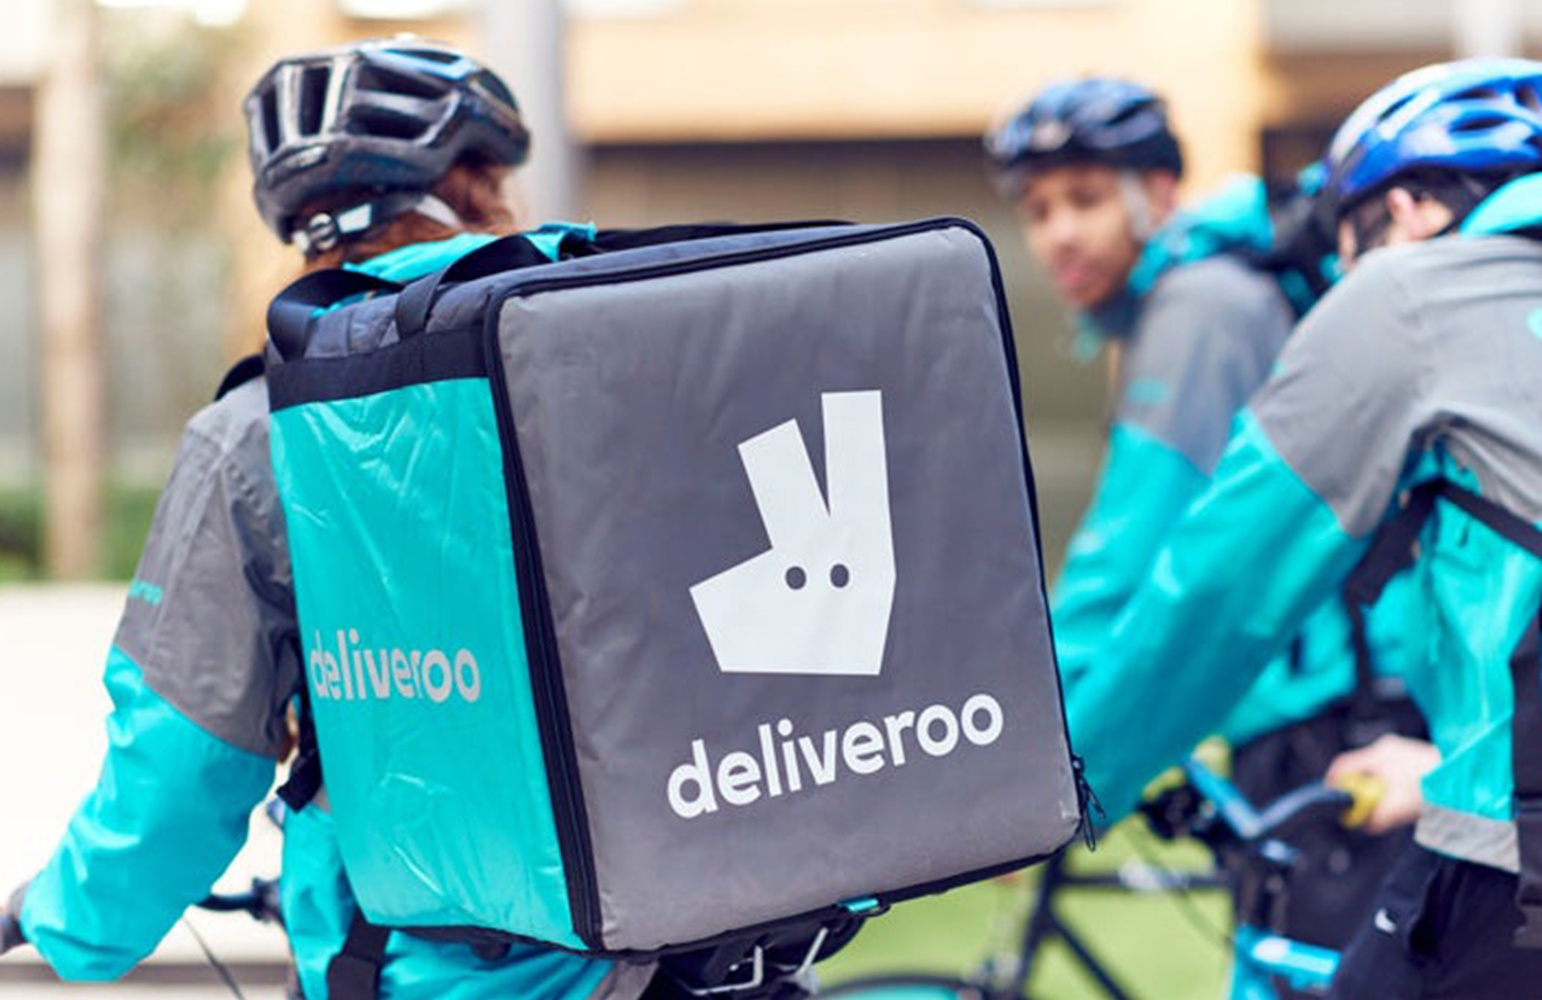 Deliveroo Rider Accident and Income Protection insurance